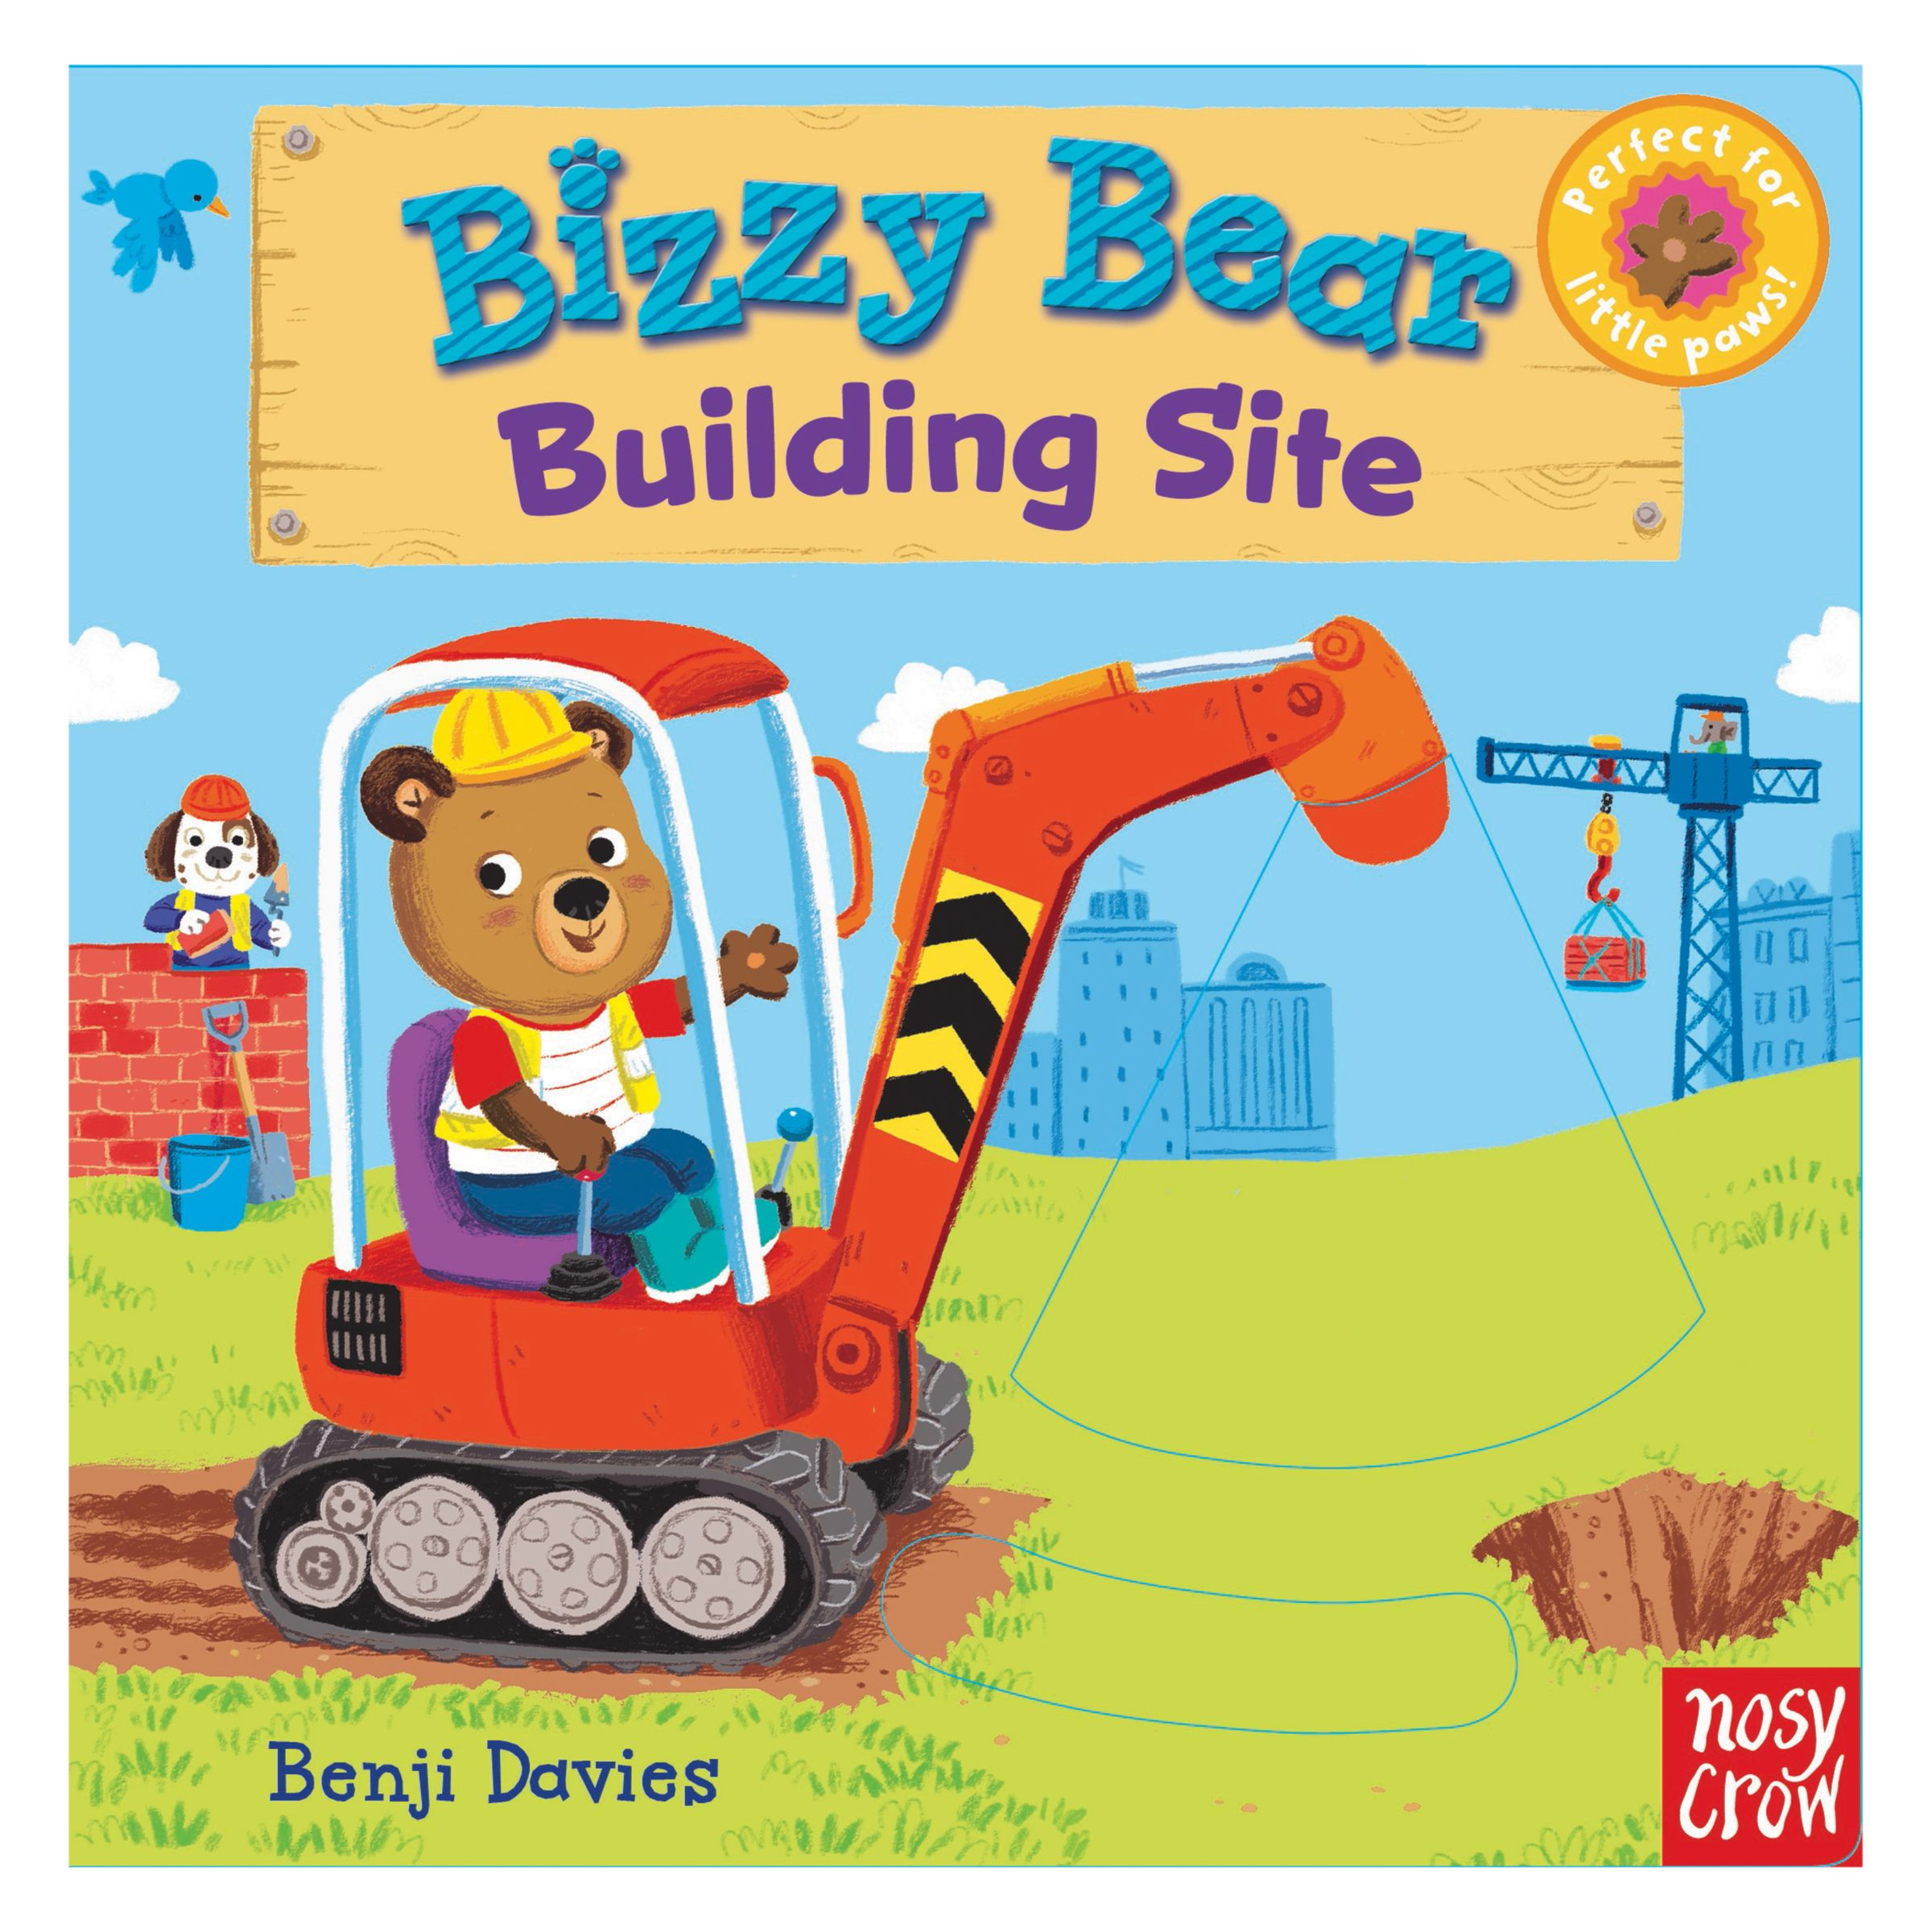 Nosy Crow Bizzy Bear Building Site Children's Book